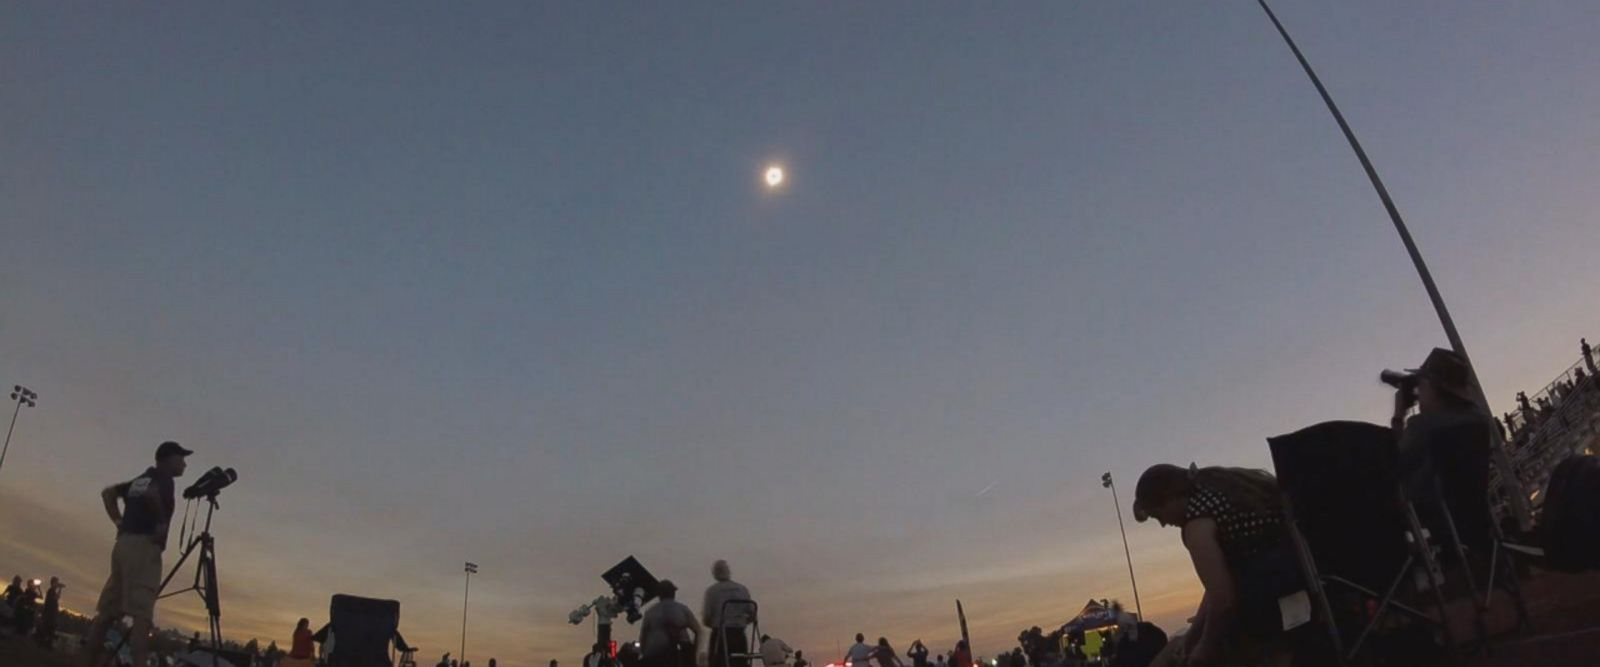 A historic total solar eclipse arced across the United States from west to east today.